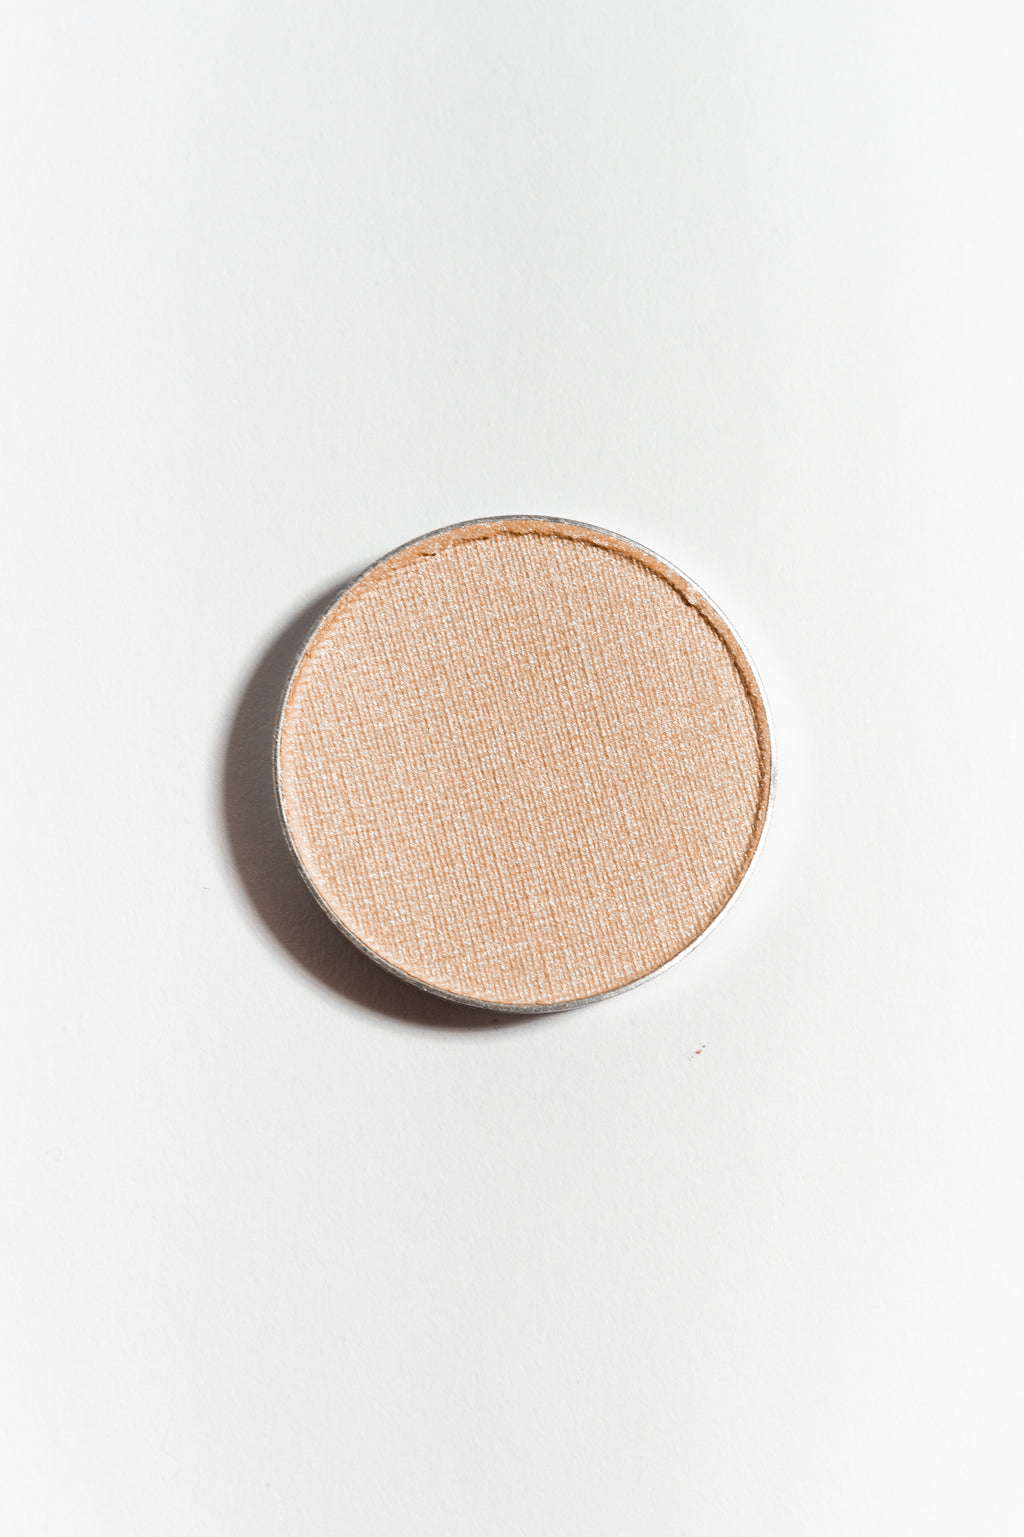 Eye shadow pan in Bisque